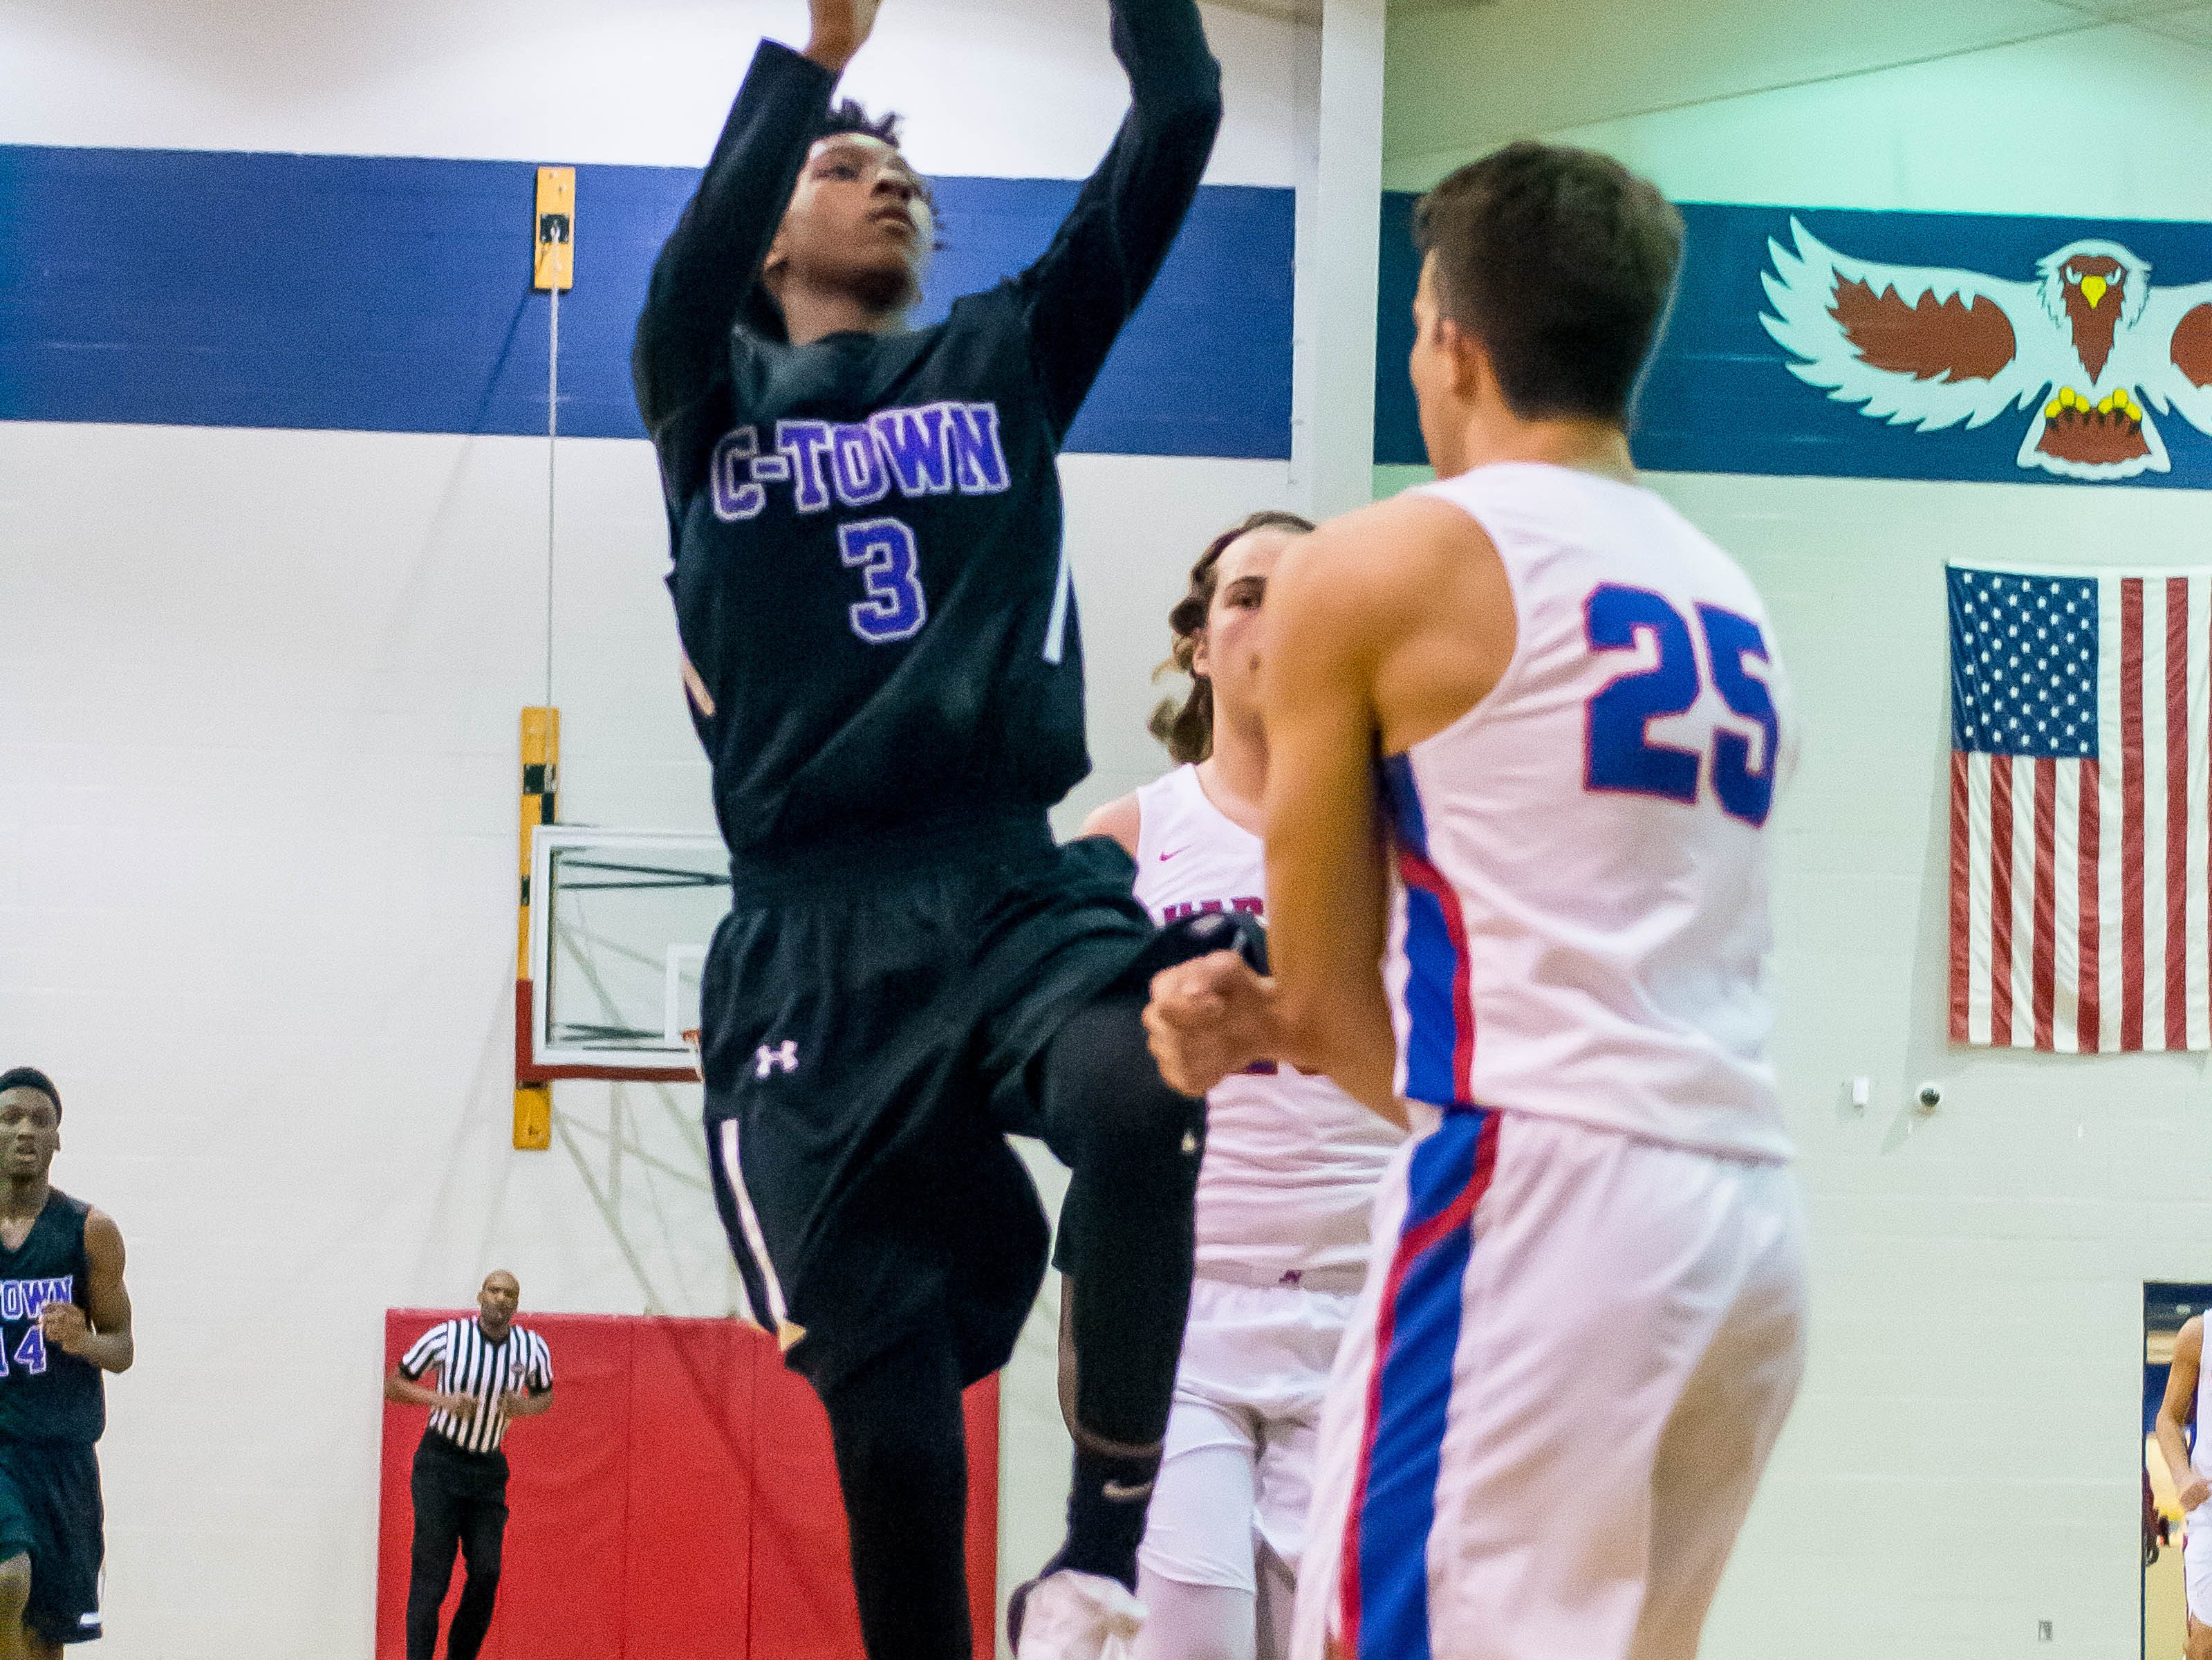 In the Creek Wood Thanksgiving Classic, the Harpeth Indian Men's basketball team was defeated by Columbia Central Lions, 50-46 on Nov. 20, 2018.